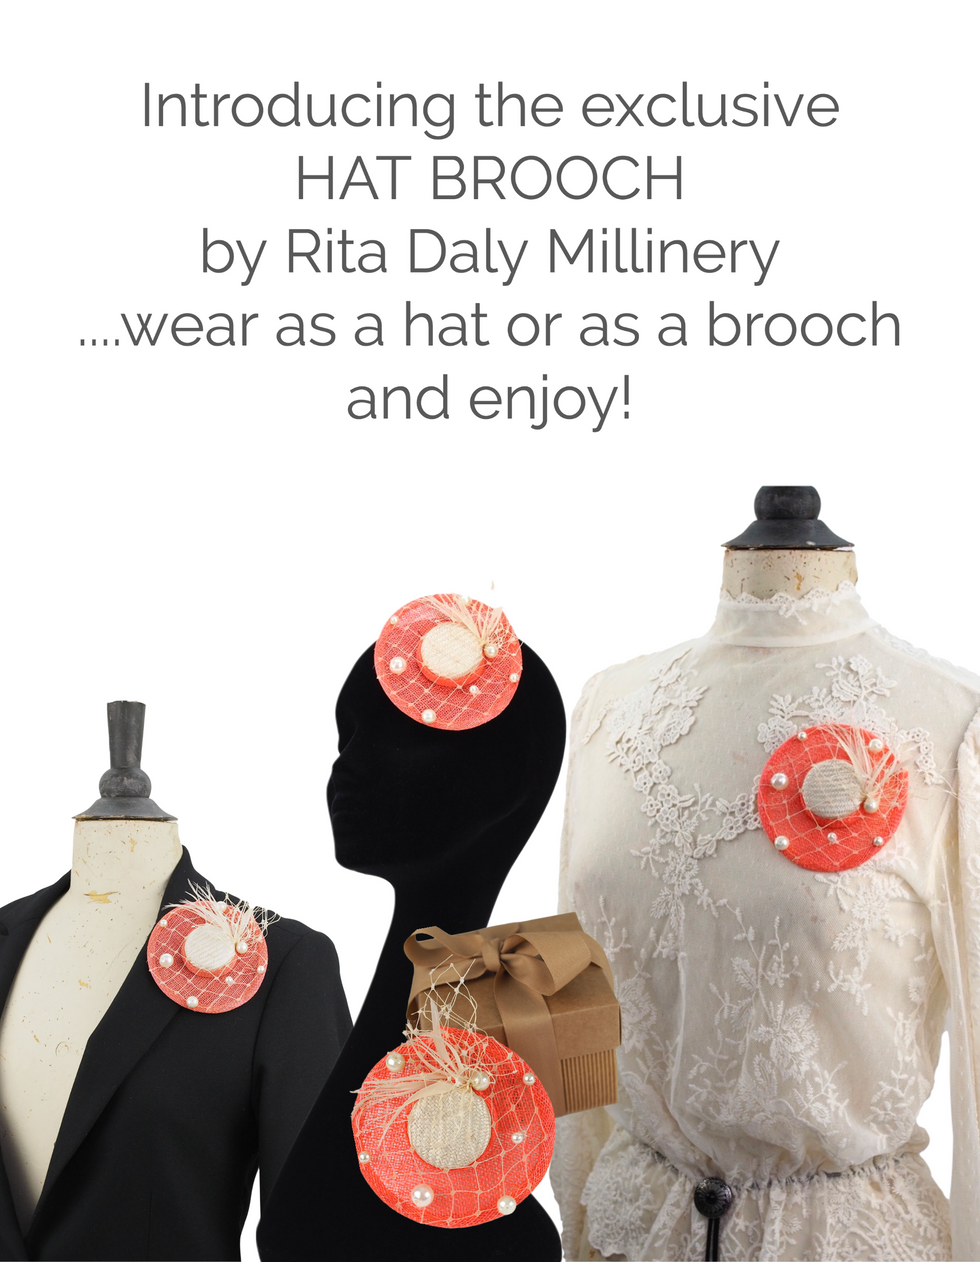 The Hat Brooch